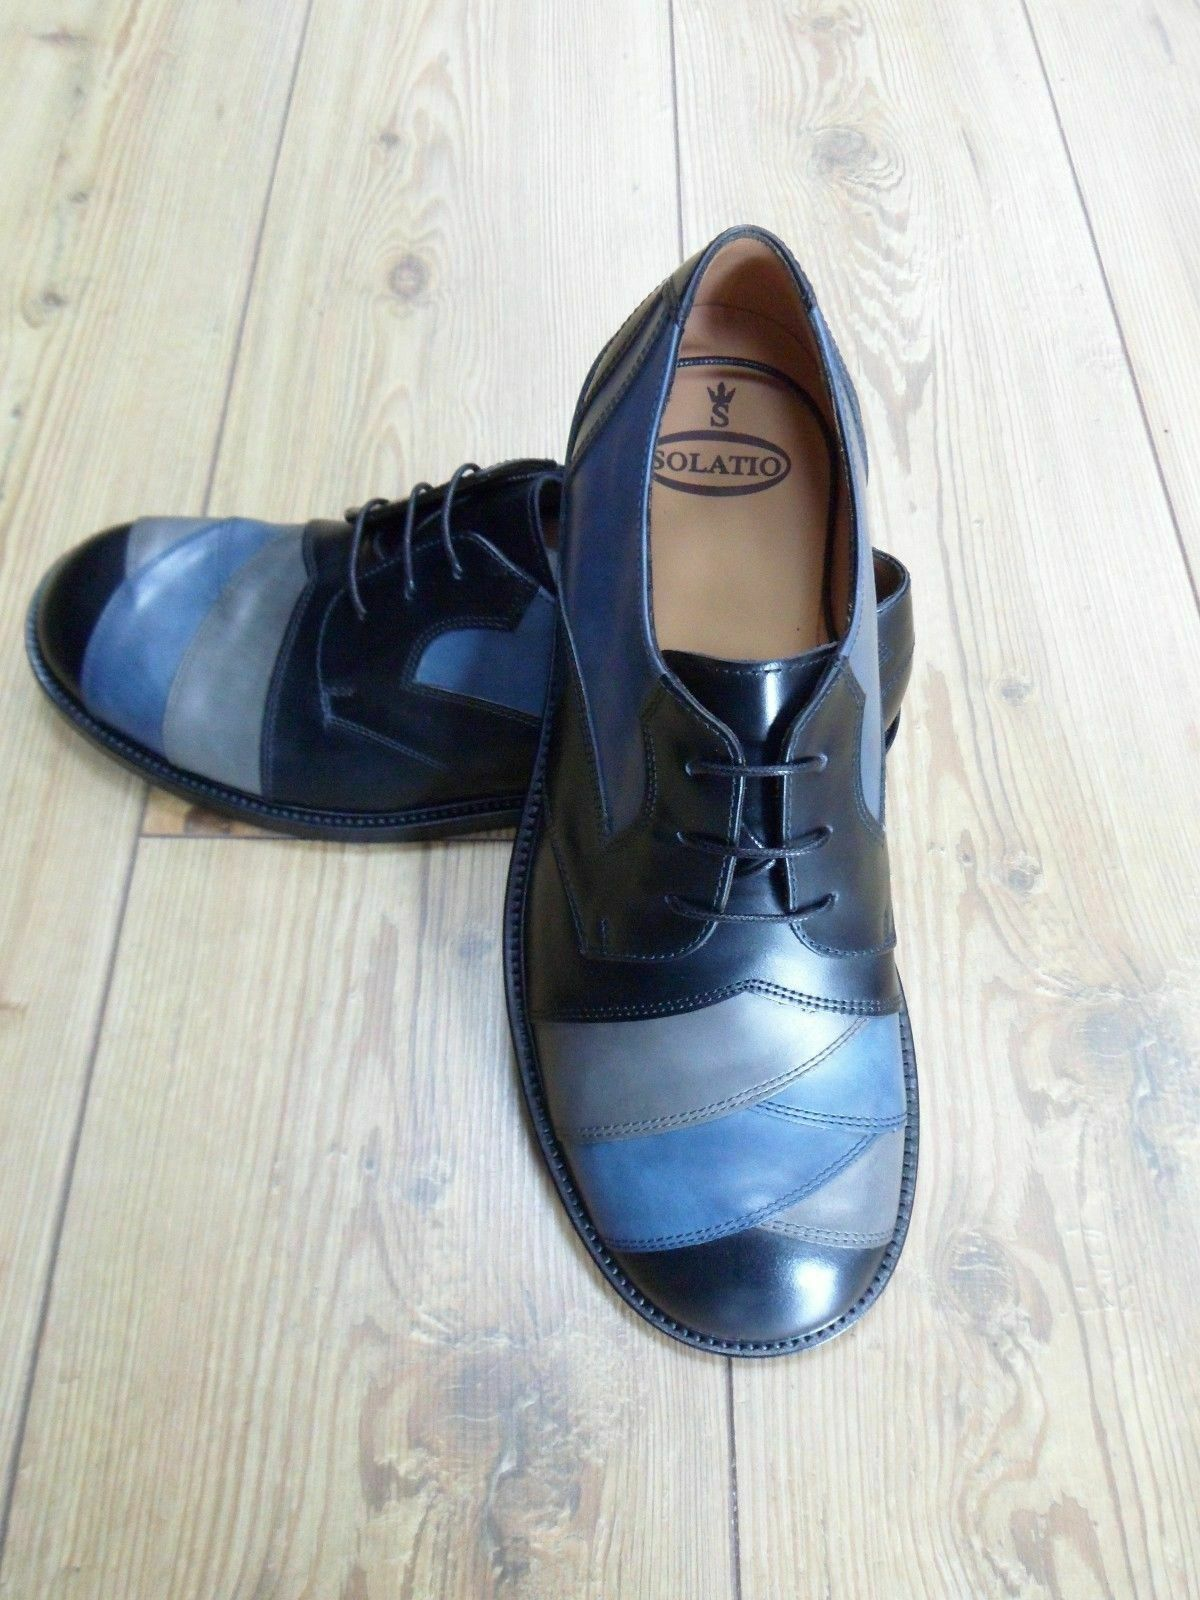 Solatio Original Credver Leather bluee Mix Size 10 Ltd Edition Northern Soul